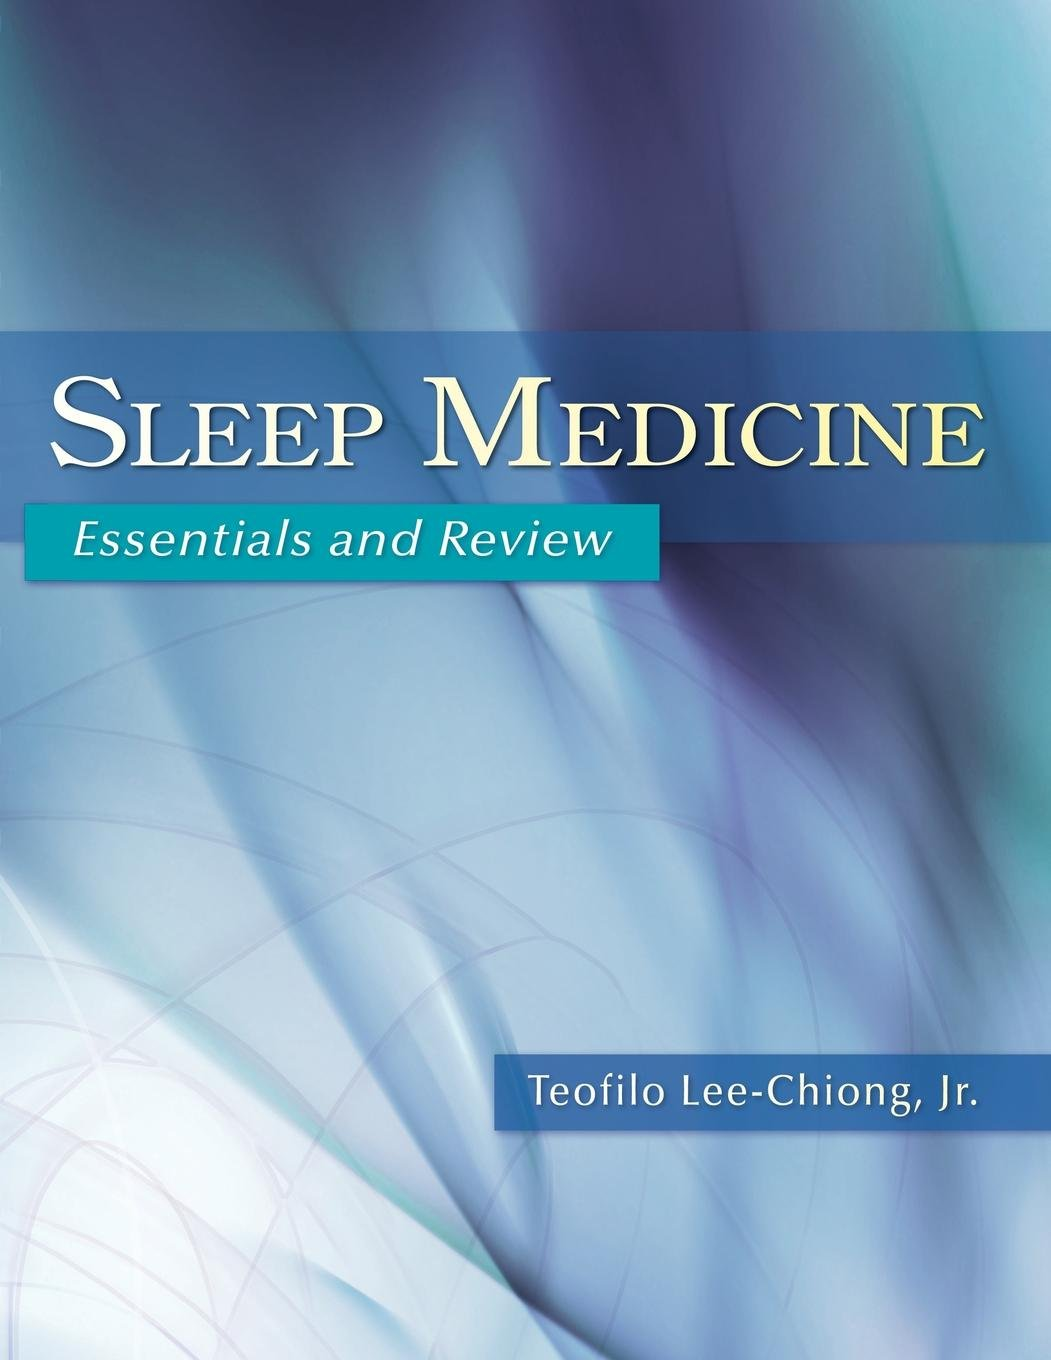 Sleep Medicine: Essentials and Review: Teofilo Lee-Chiong: 9780195306590:  Neurology: Amazon Canada